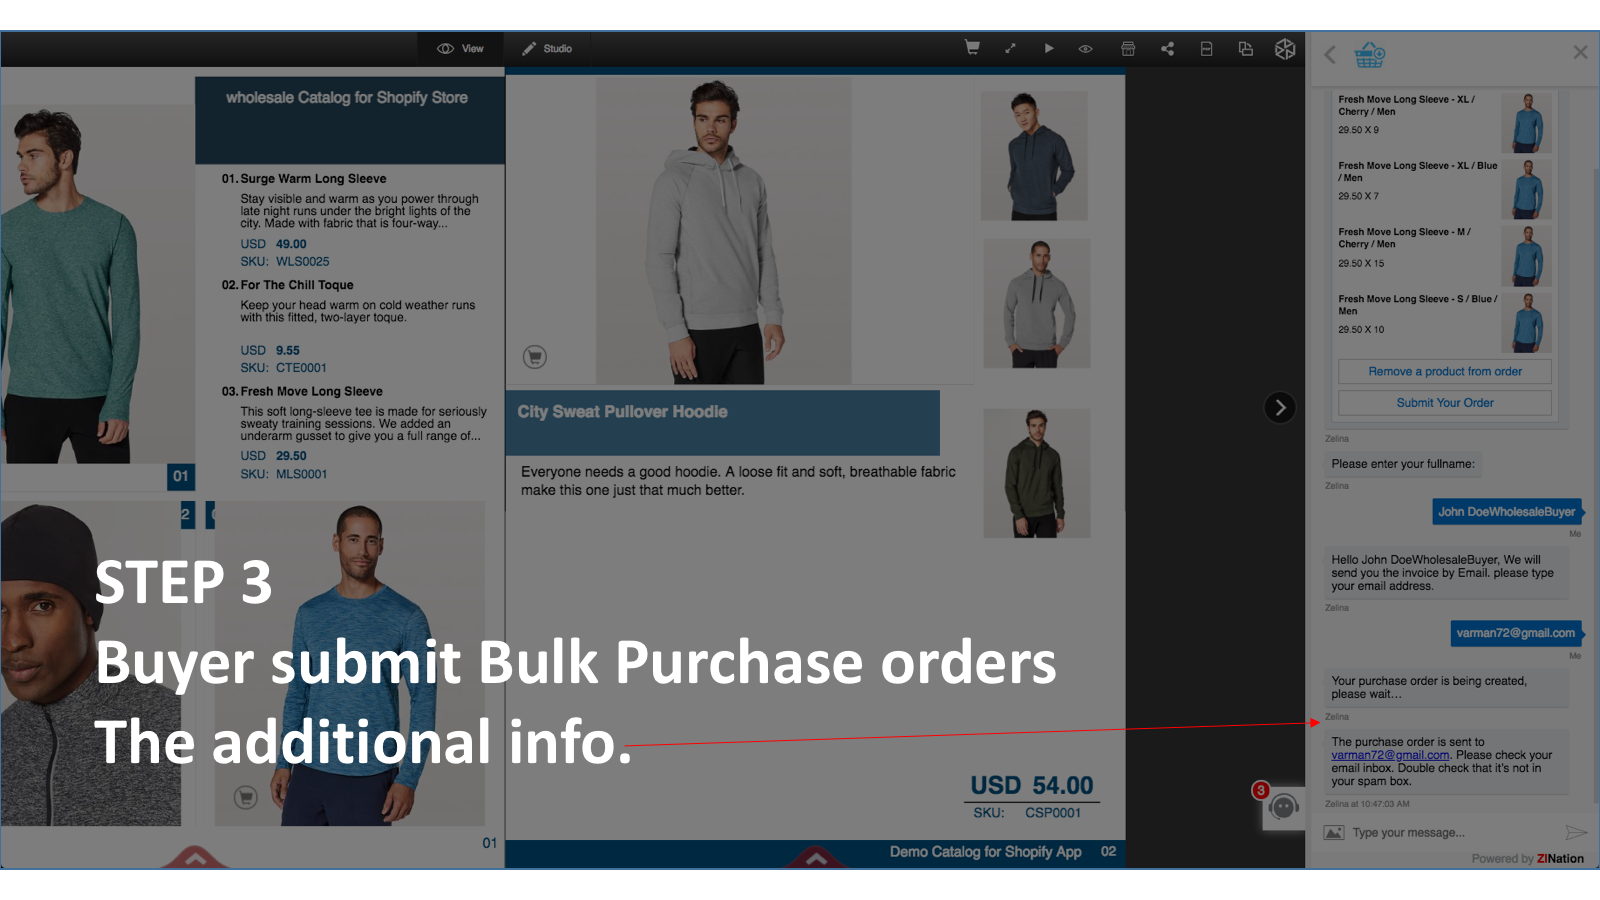 Step 3 Buyer submit bulk purchase order